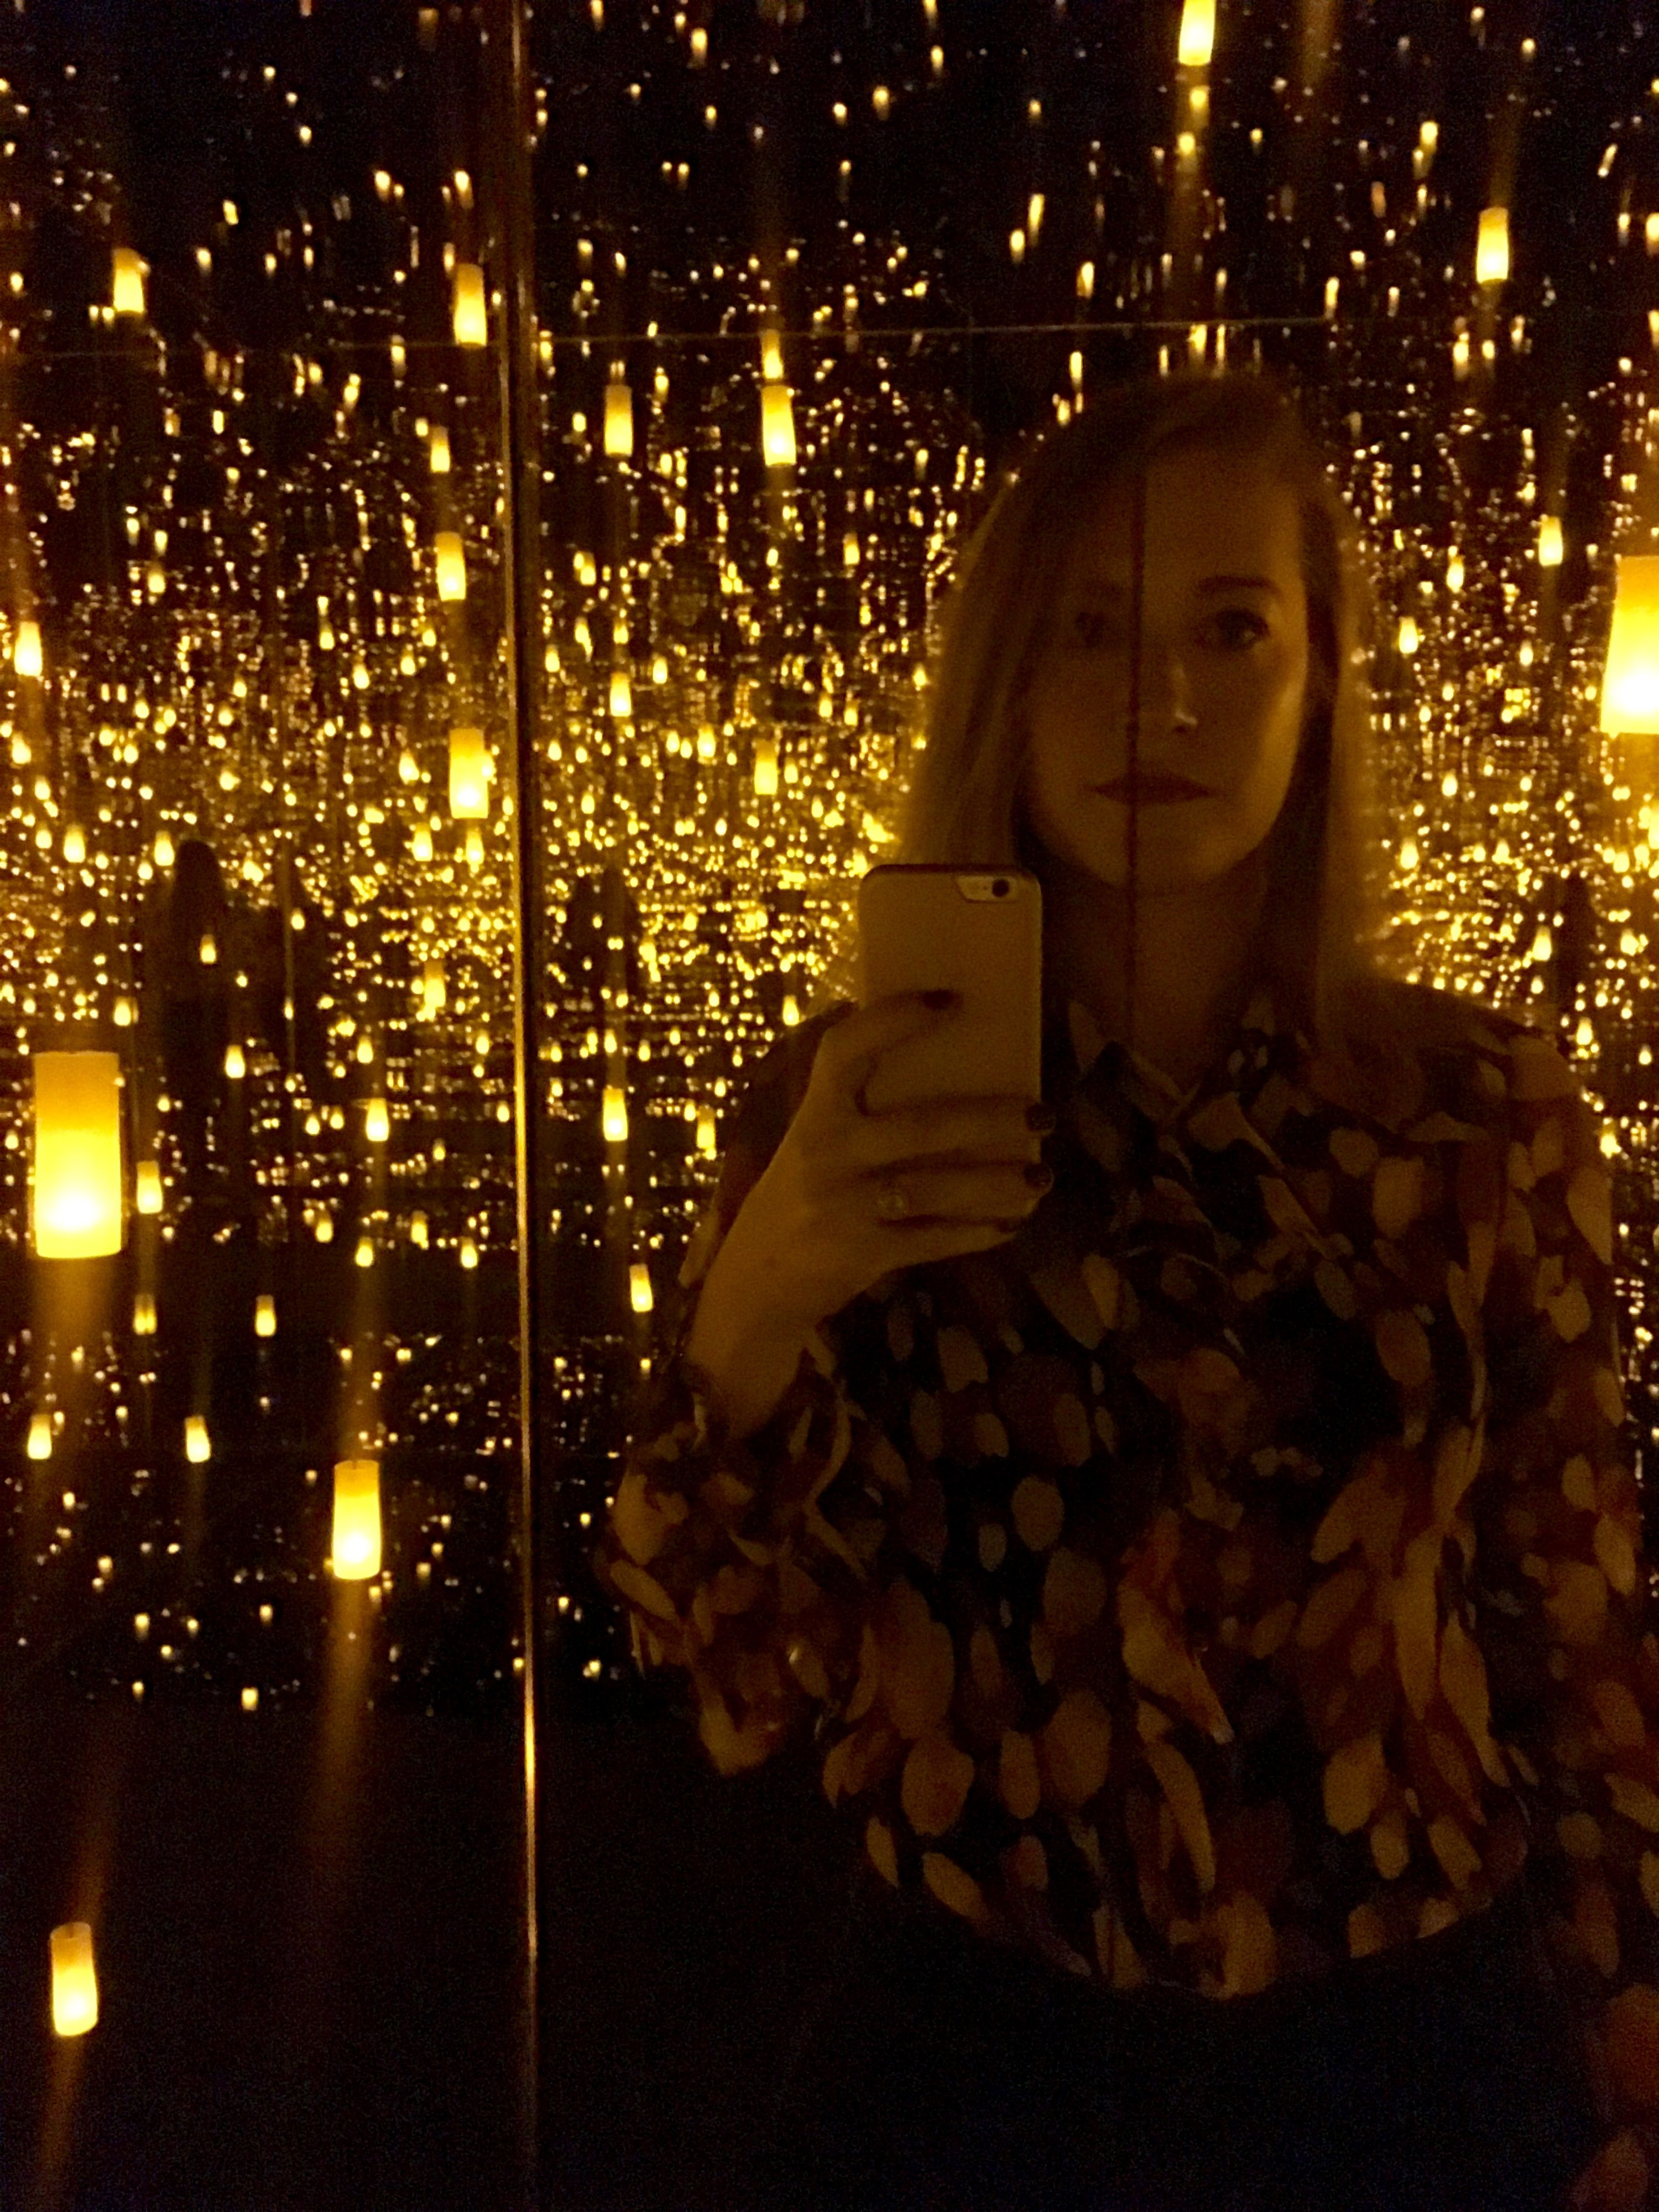 The author inside of a sparkle-filled installation by Yayoi Kusama